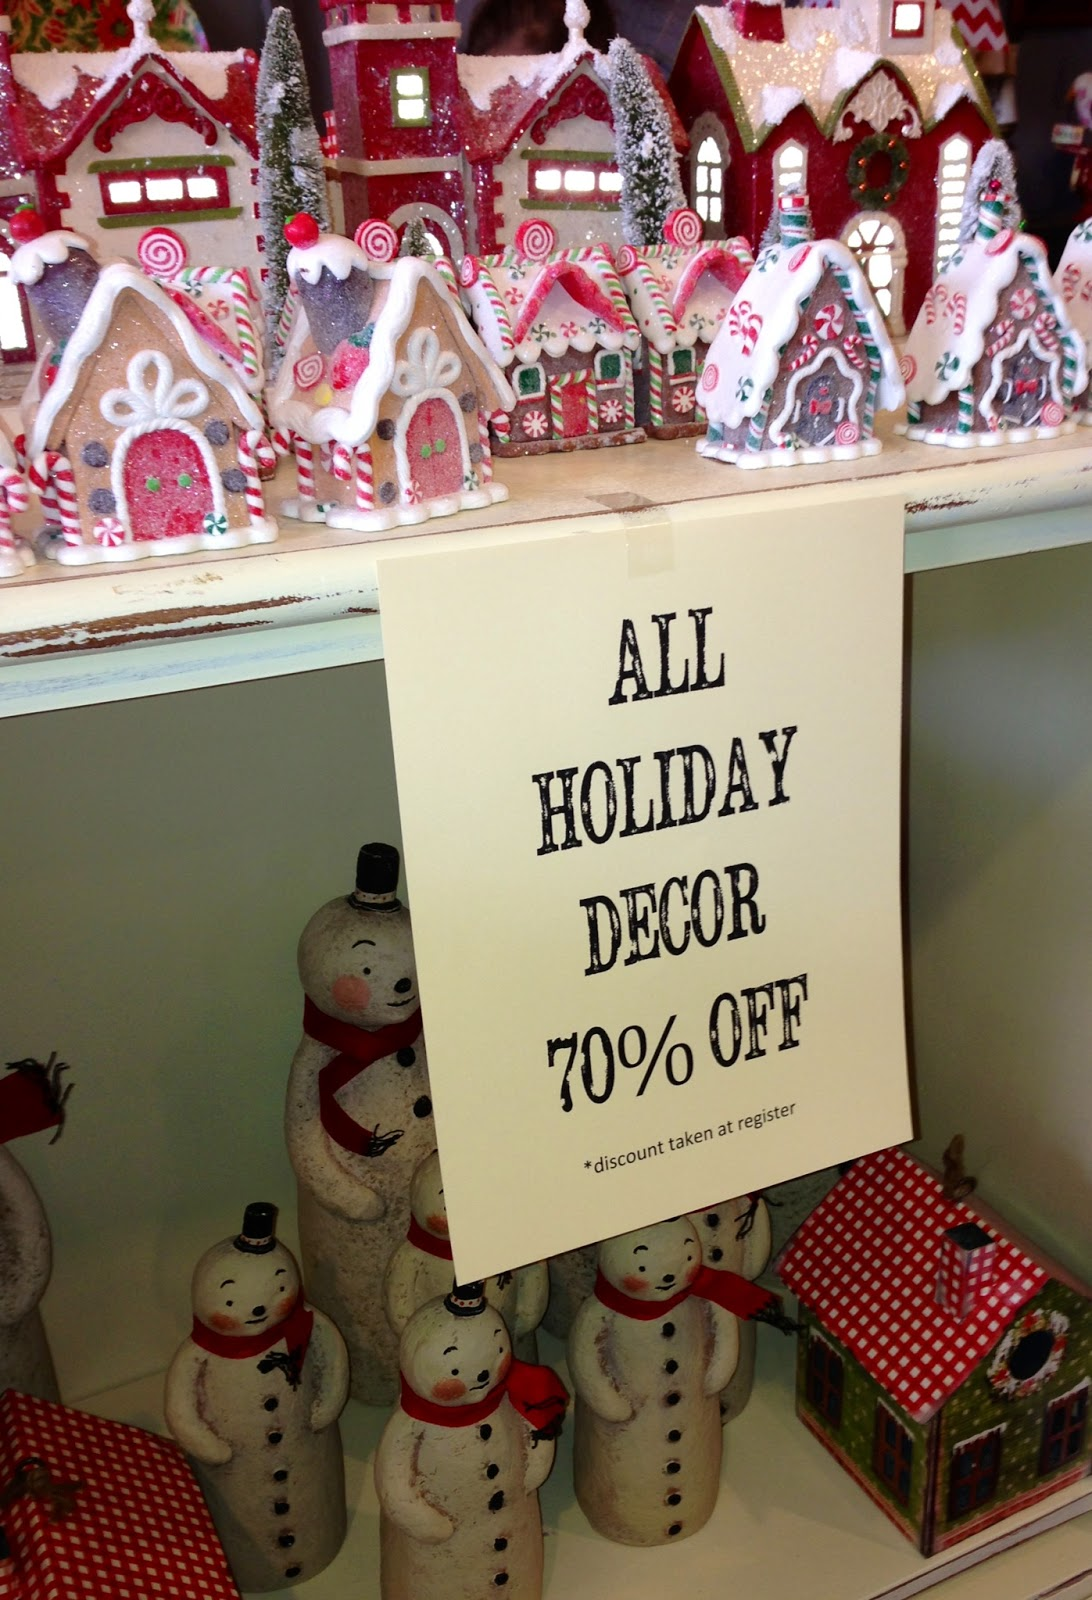 The Daily Uptown Country Holiday Hours 70 Off Xmas Decor